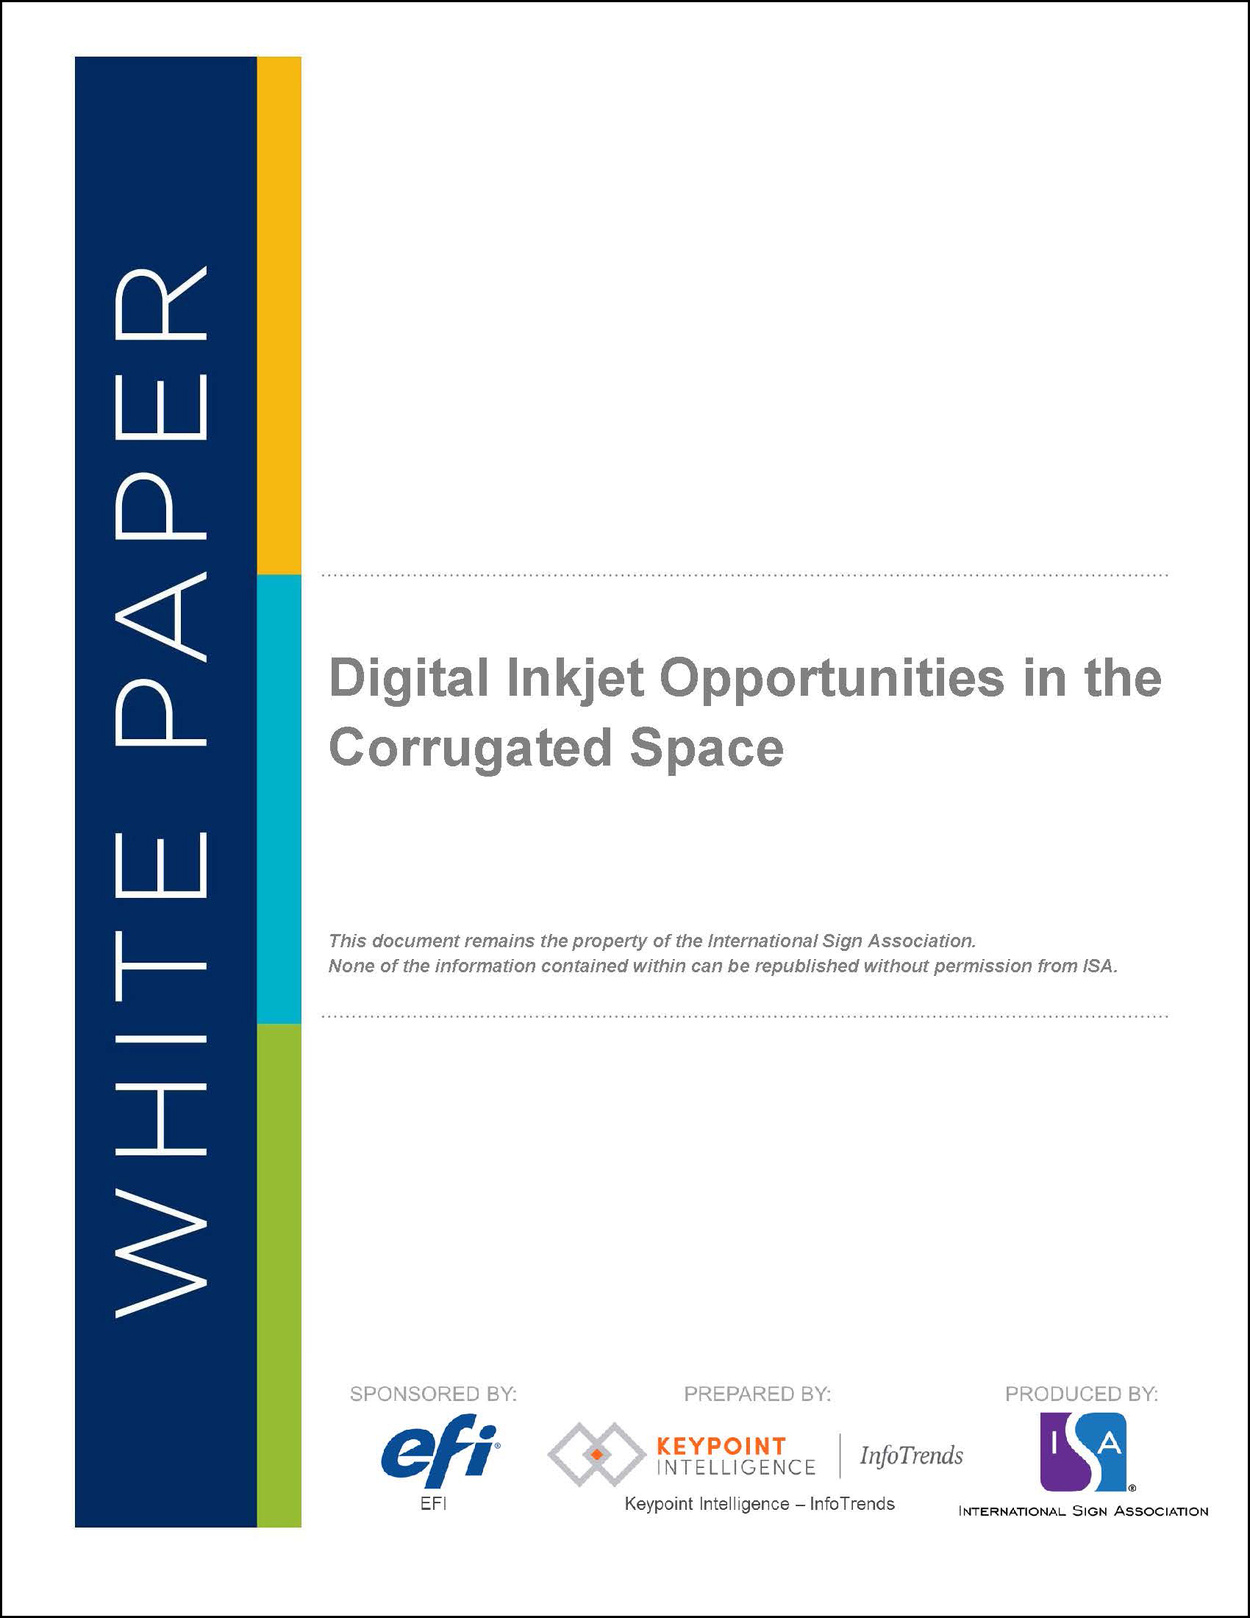 Digital Inkjet Opportunities in the Corrugated Space